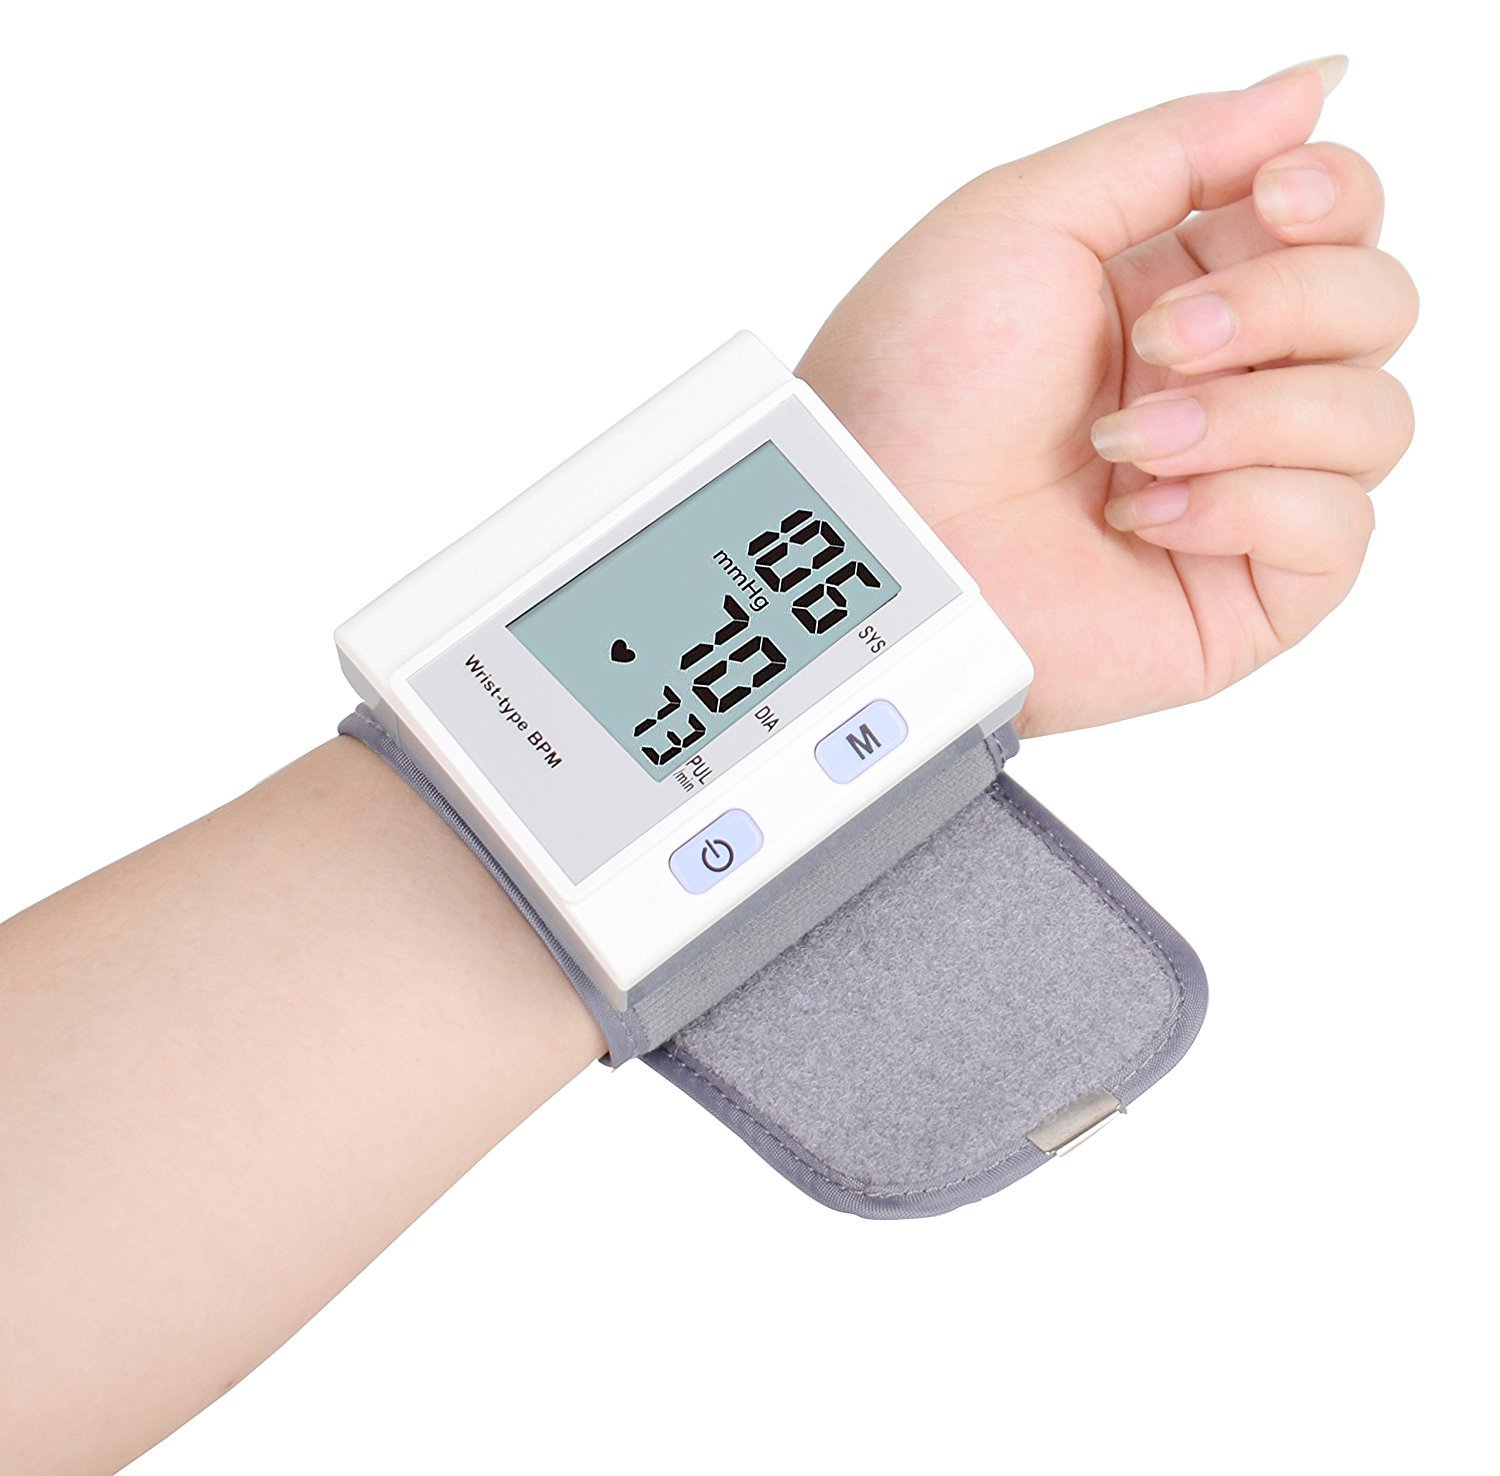 Blood Pressure Monitor – Portable Blood Pressure Cuff Wrist, Automatic Blood Pressure Machine with LED Screen Display, FDA Approved One Touch Operation Health Care Device